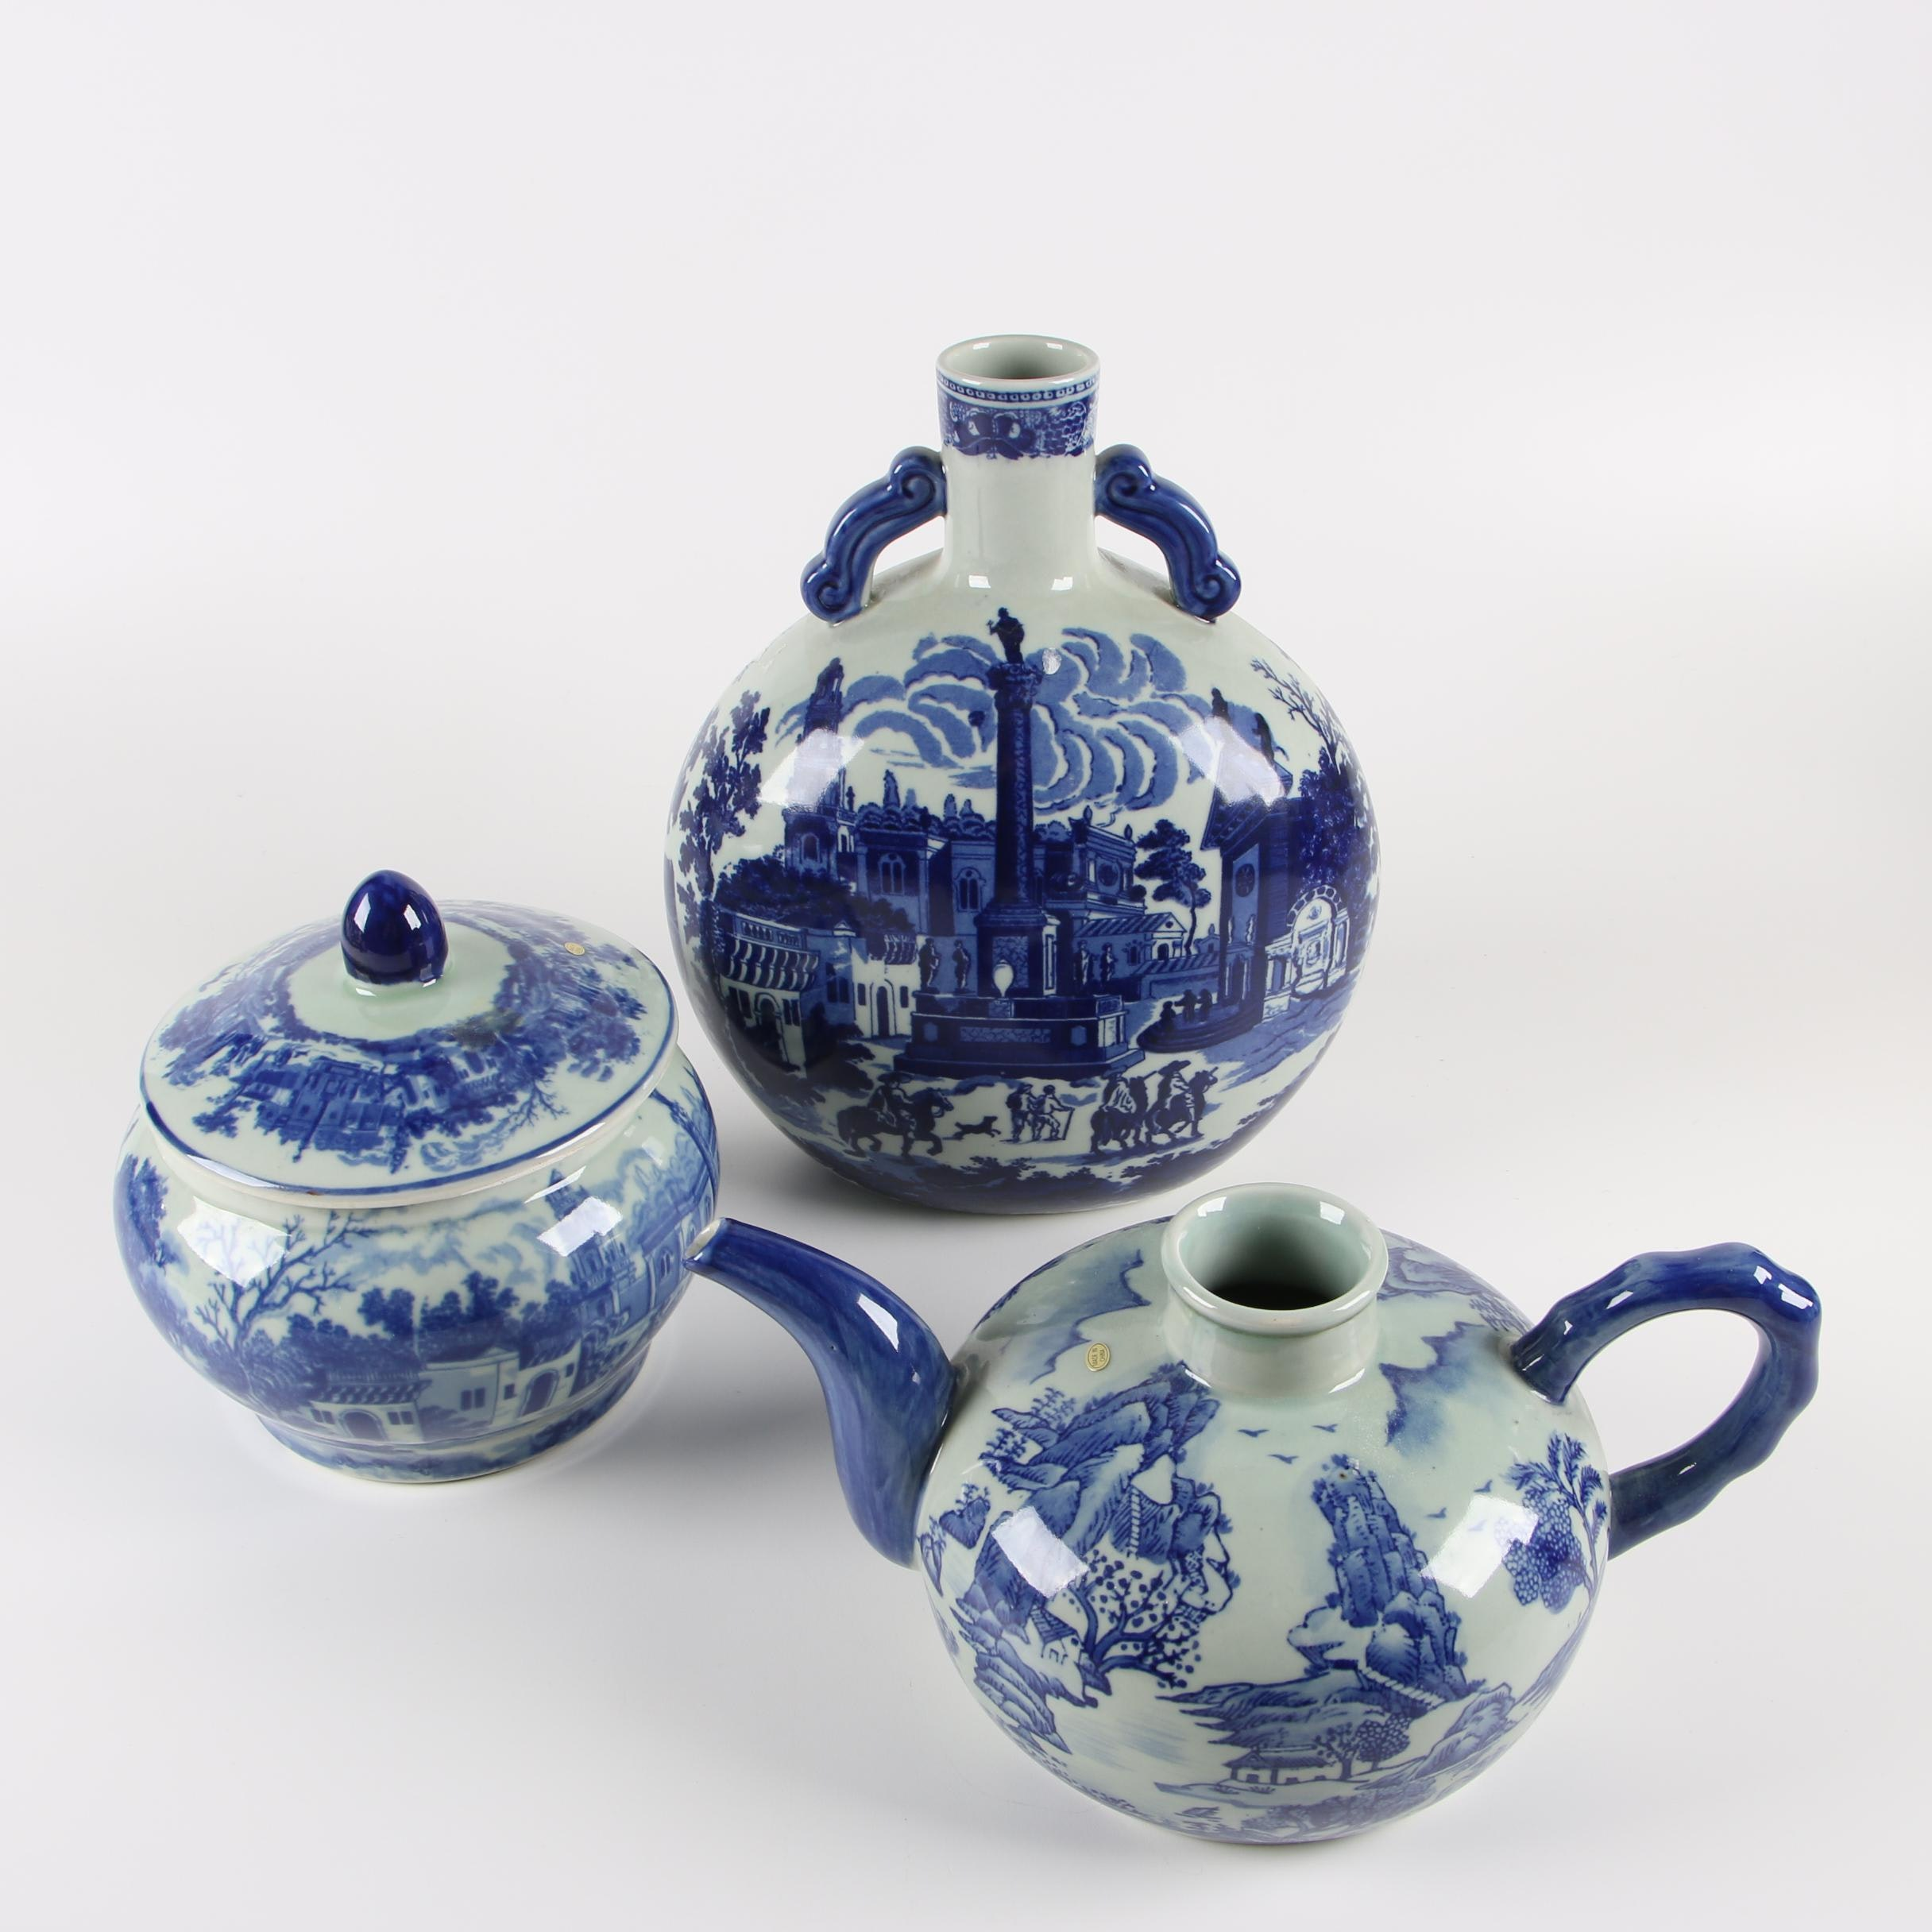 Chinese Victoria Ware Ironstone Bottle Vase and Jar with Teapot